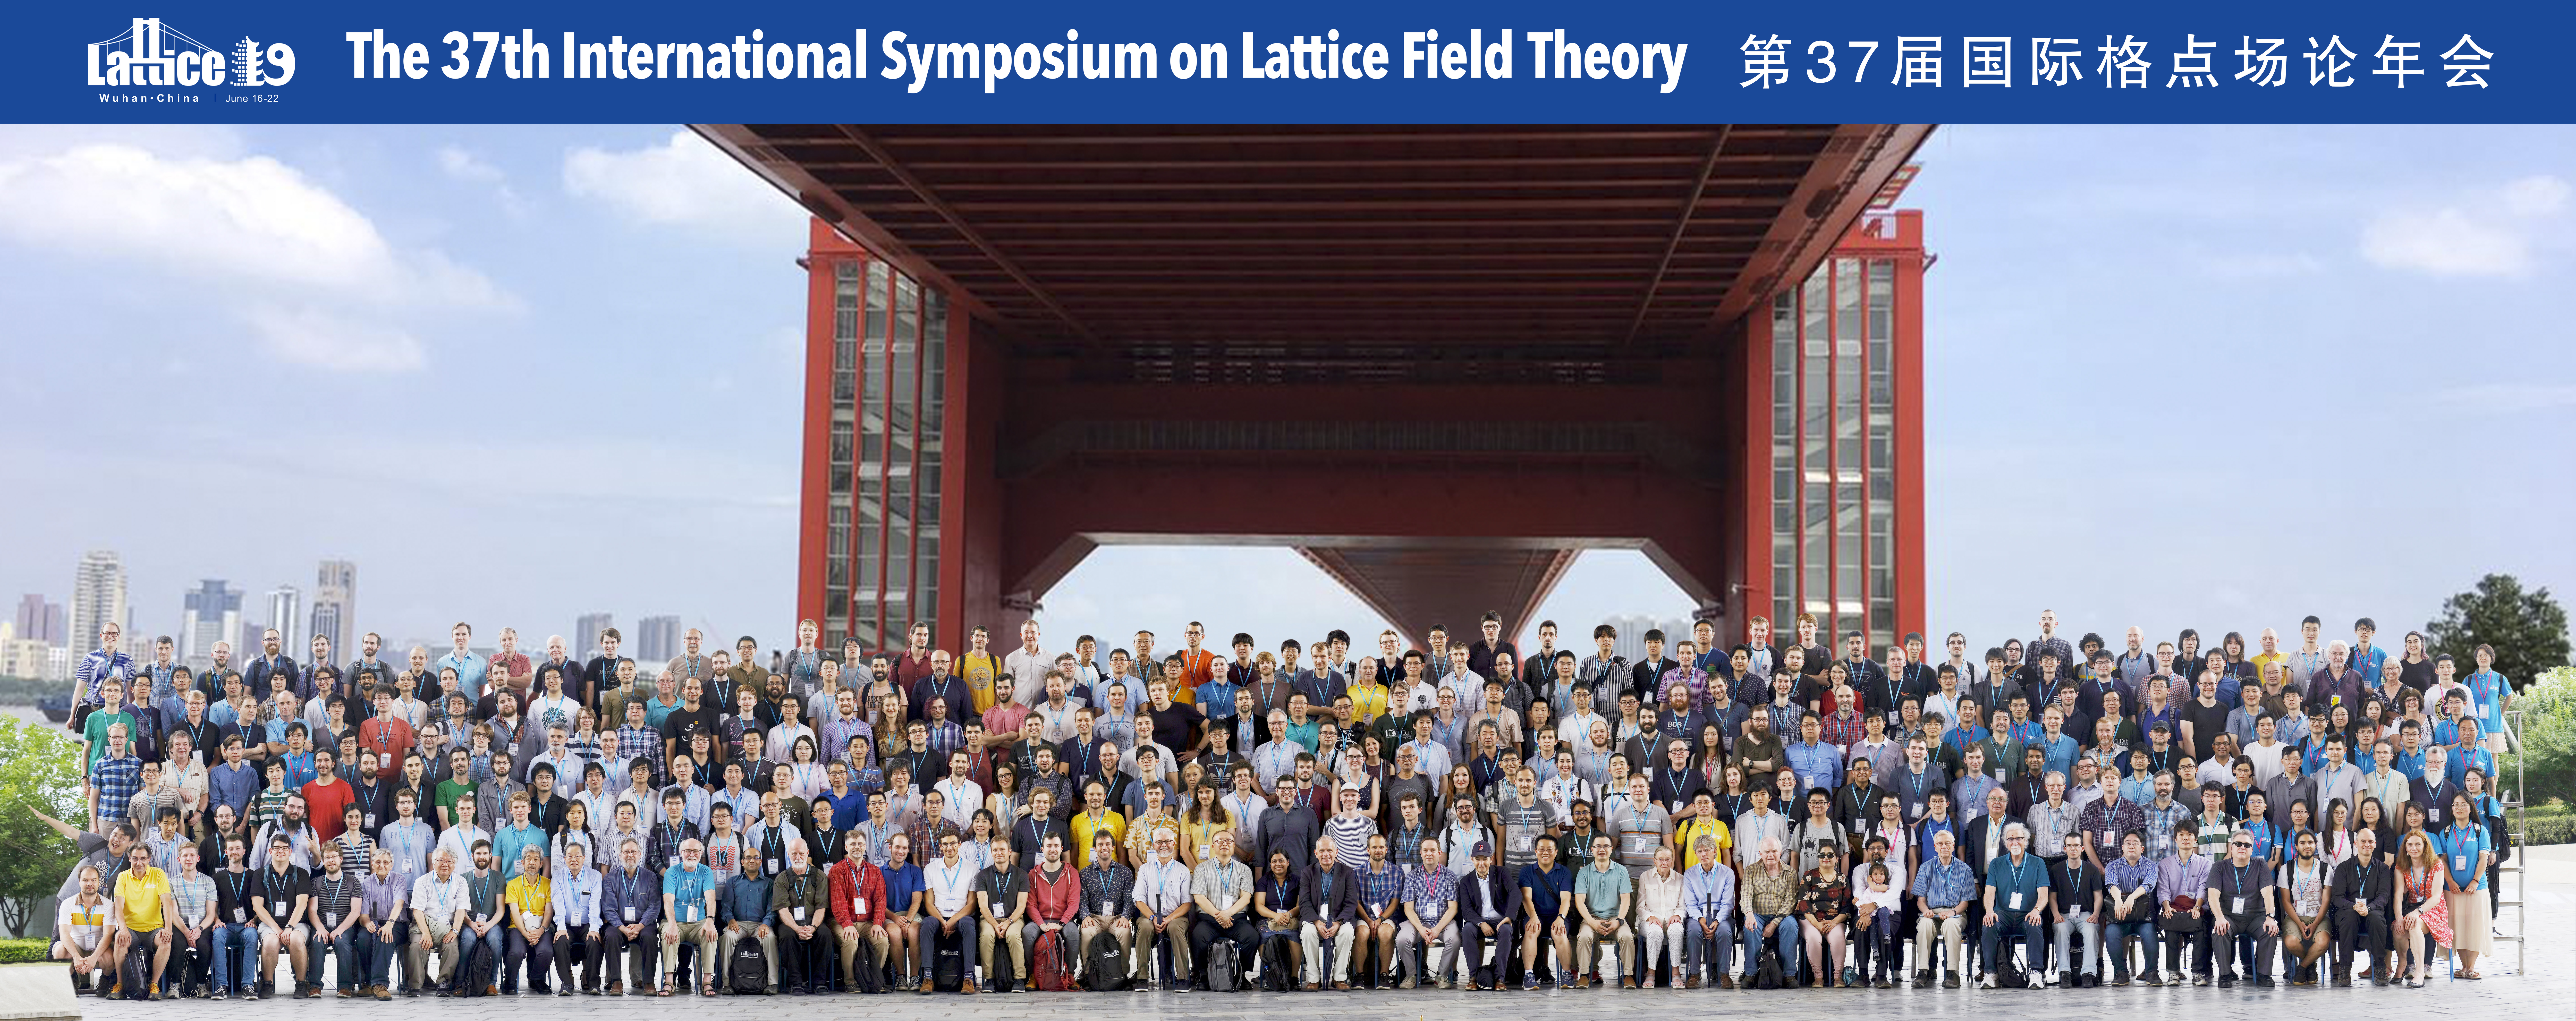 The 37th International Symposium on Lattice Field Theory